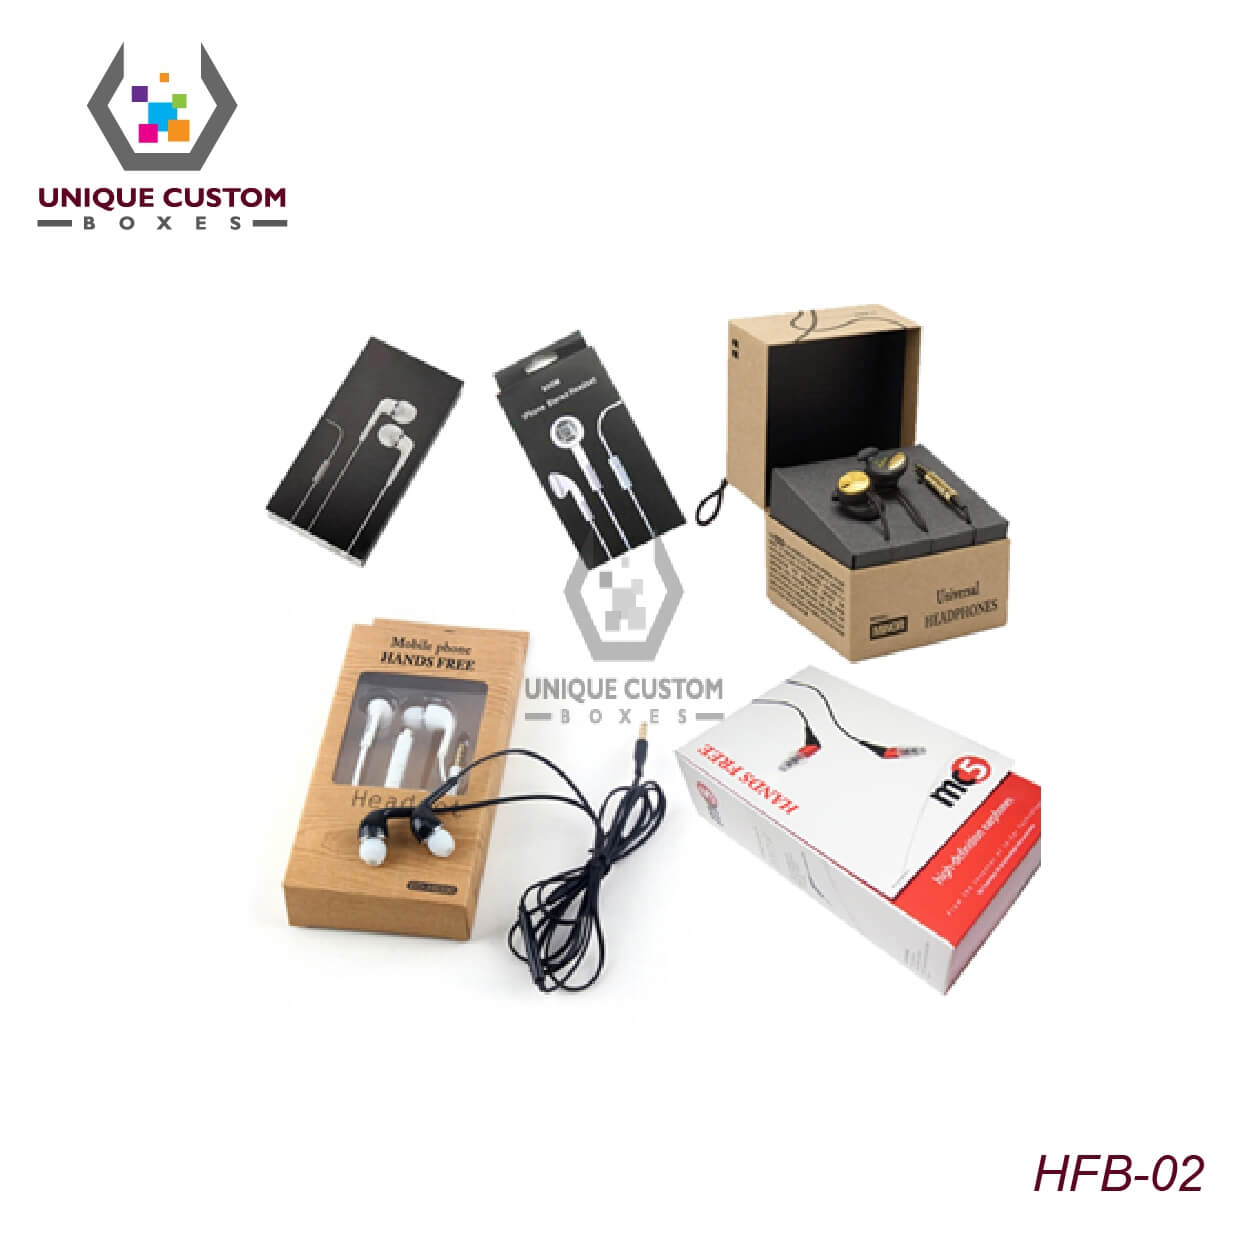 Hand-free Boxes-2